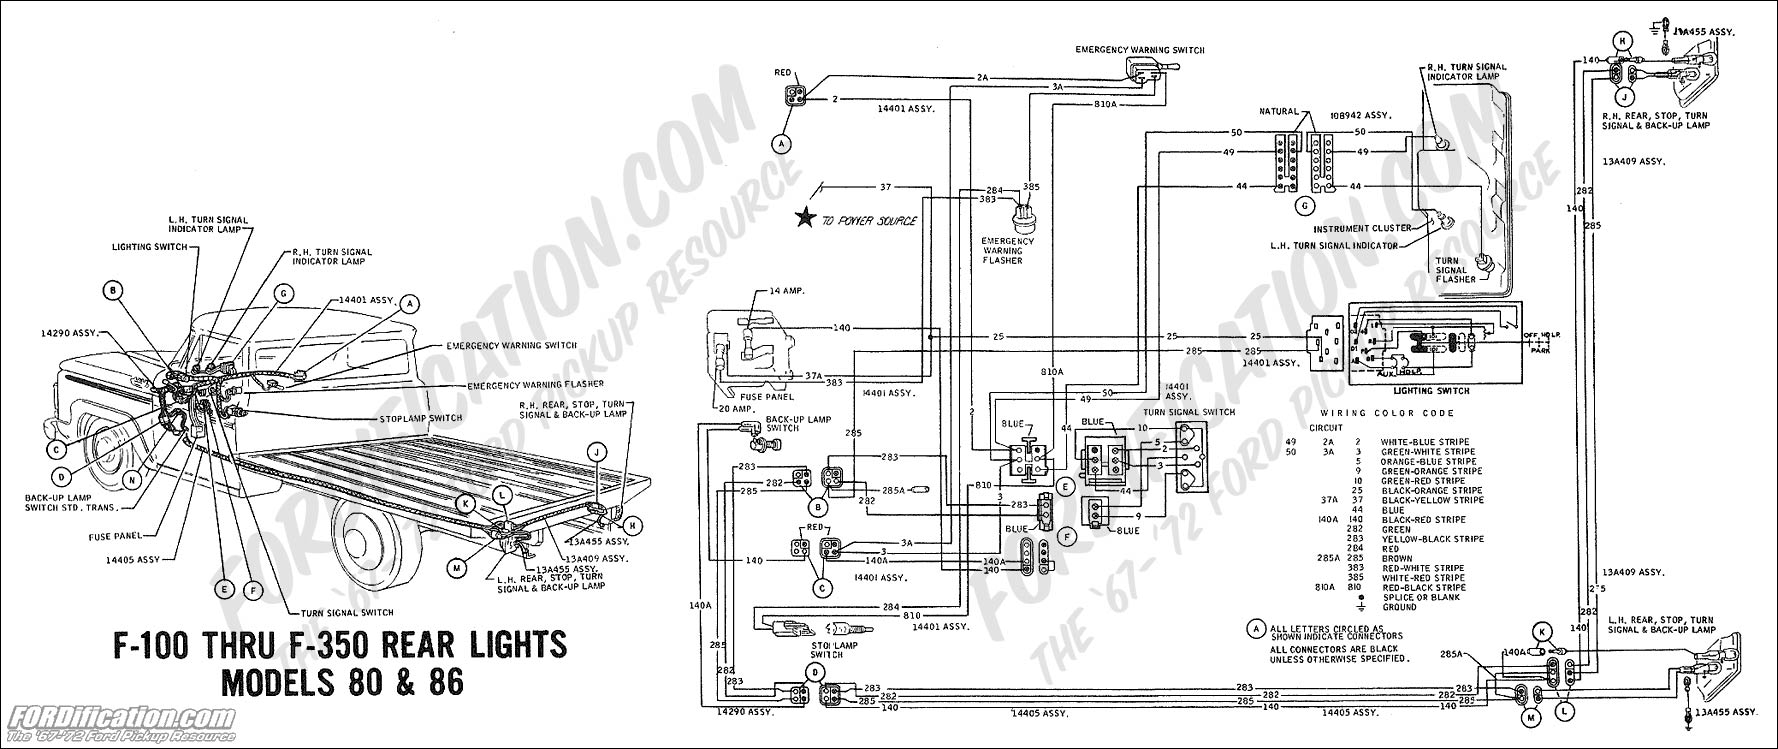 wiring_69rearlights mdls80 86 ford truck technical drawings and schematics section h wiring truck wiring diagrams at bayanpartner.co